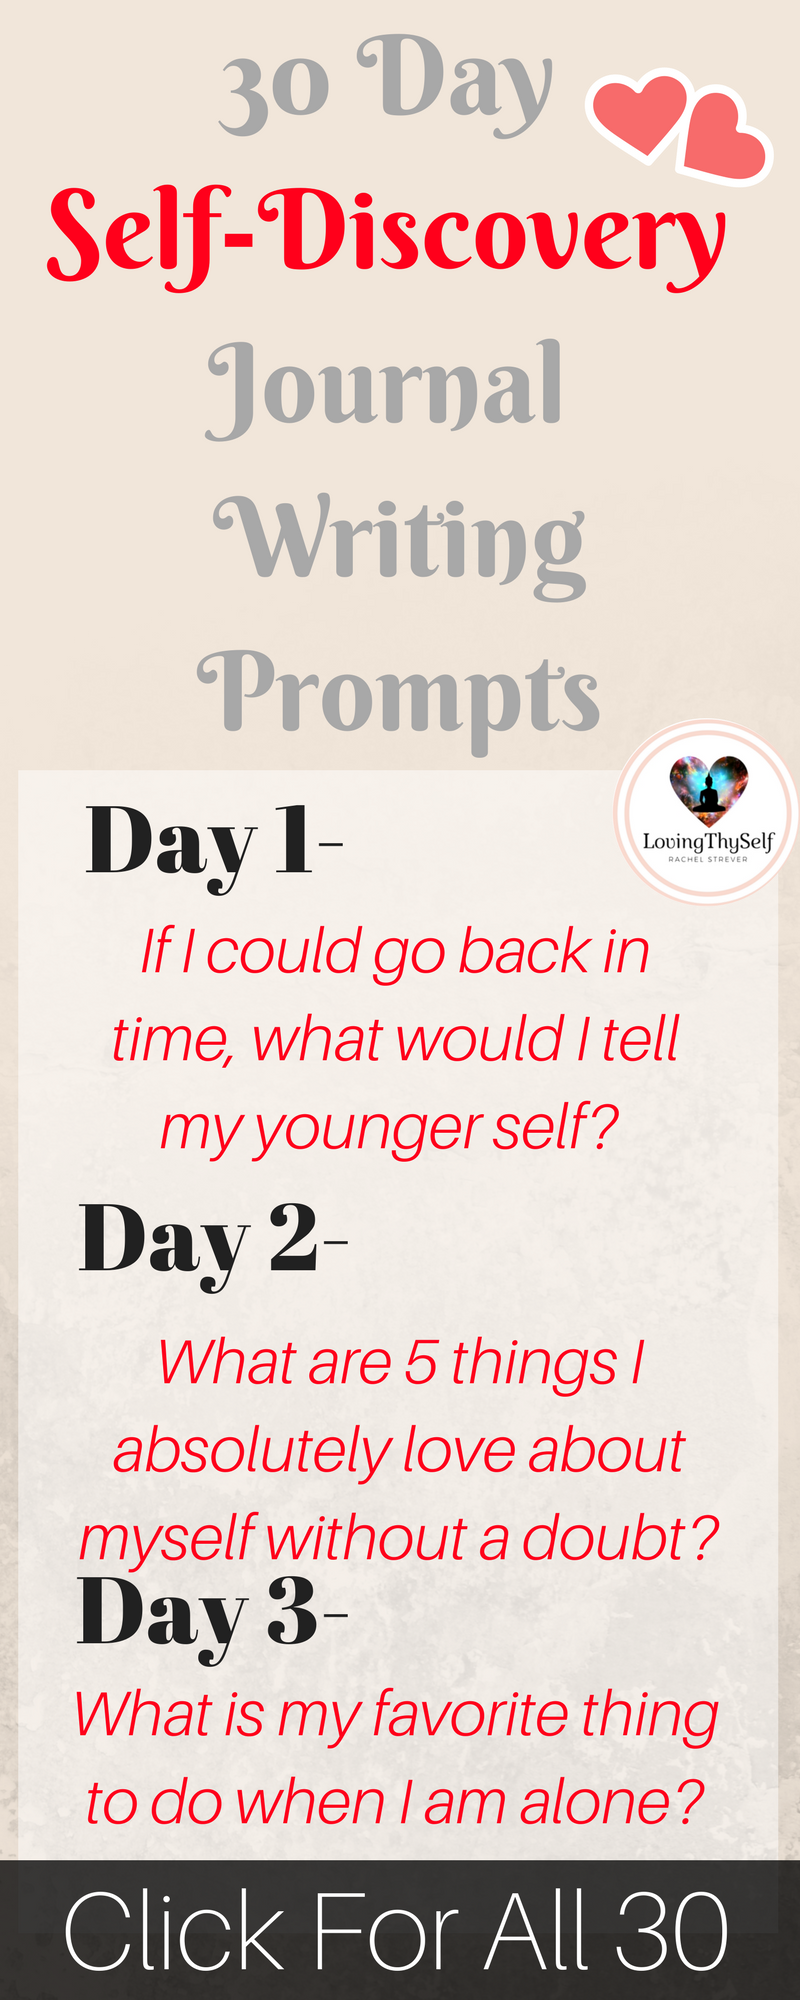 003 30 Day Journal Prompts For SelfDiscovery Journal